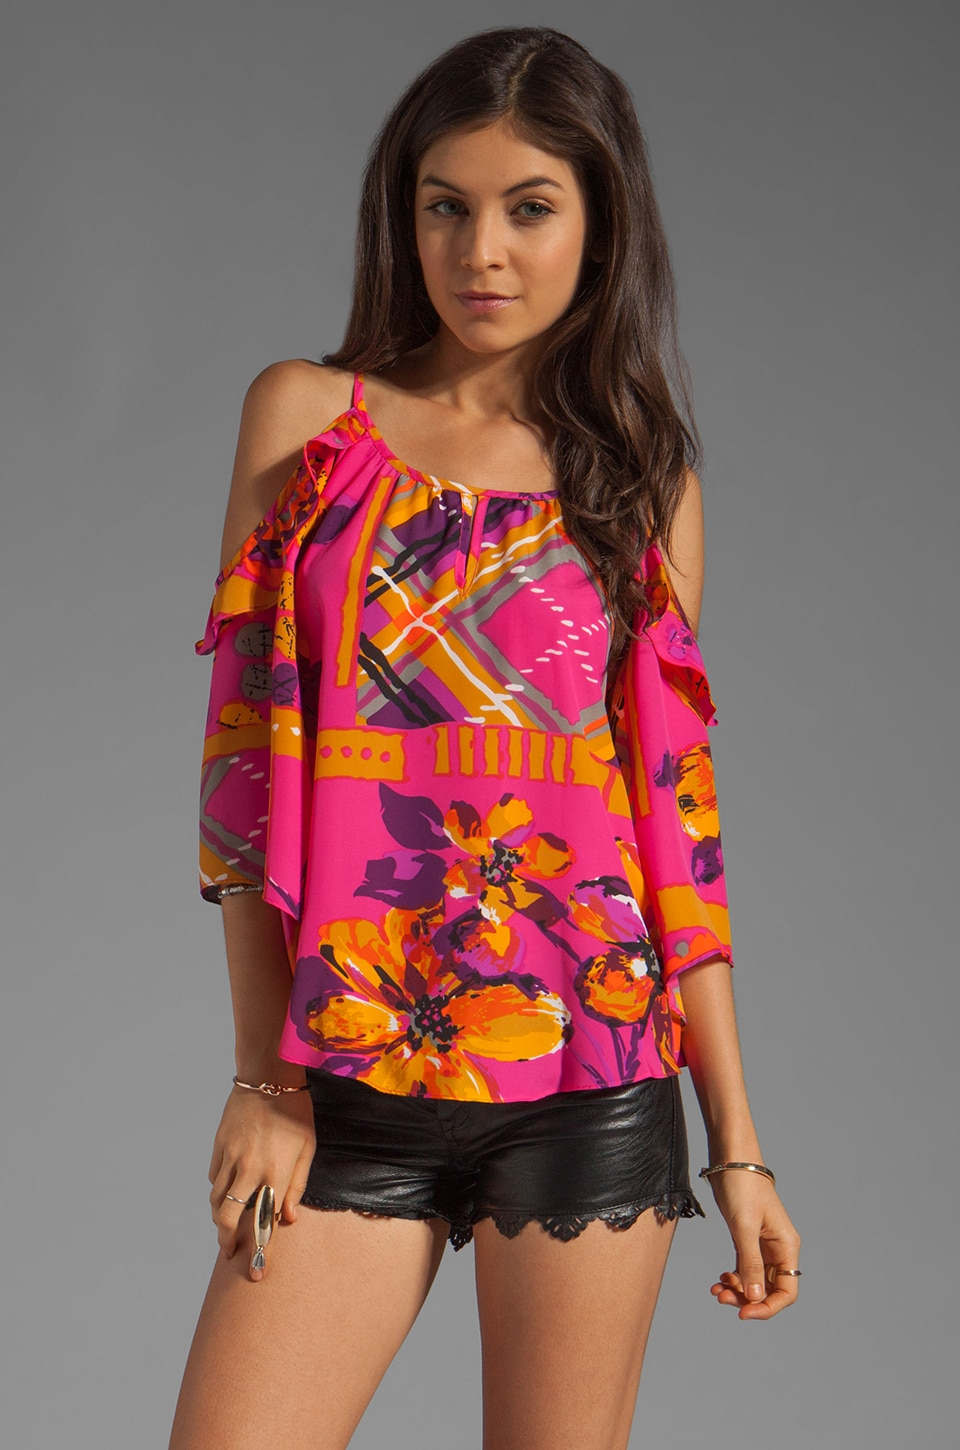 VOOM by Joy Han Missy Open Shoulder Top in Multi